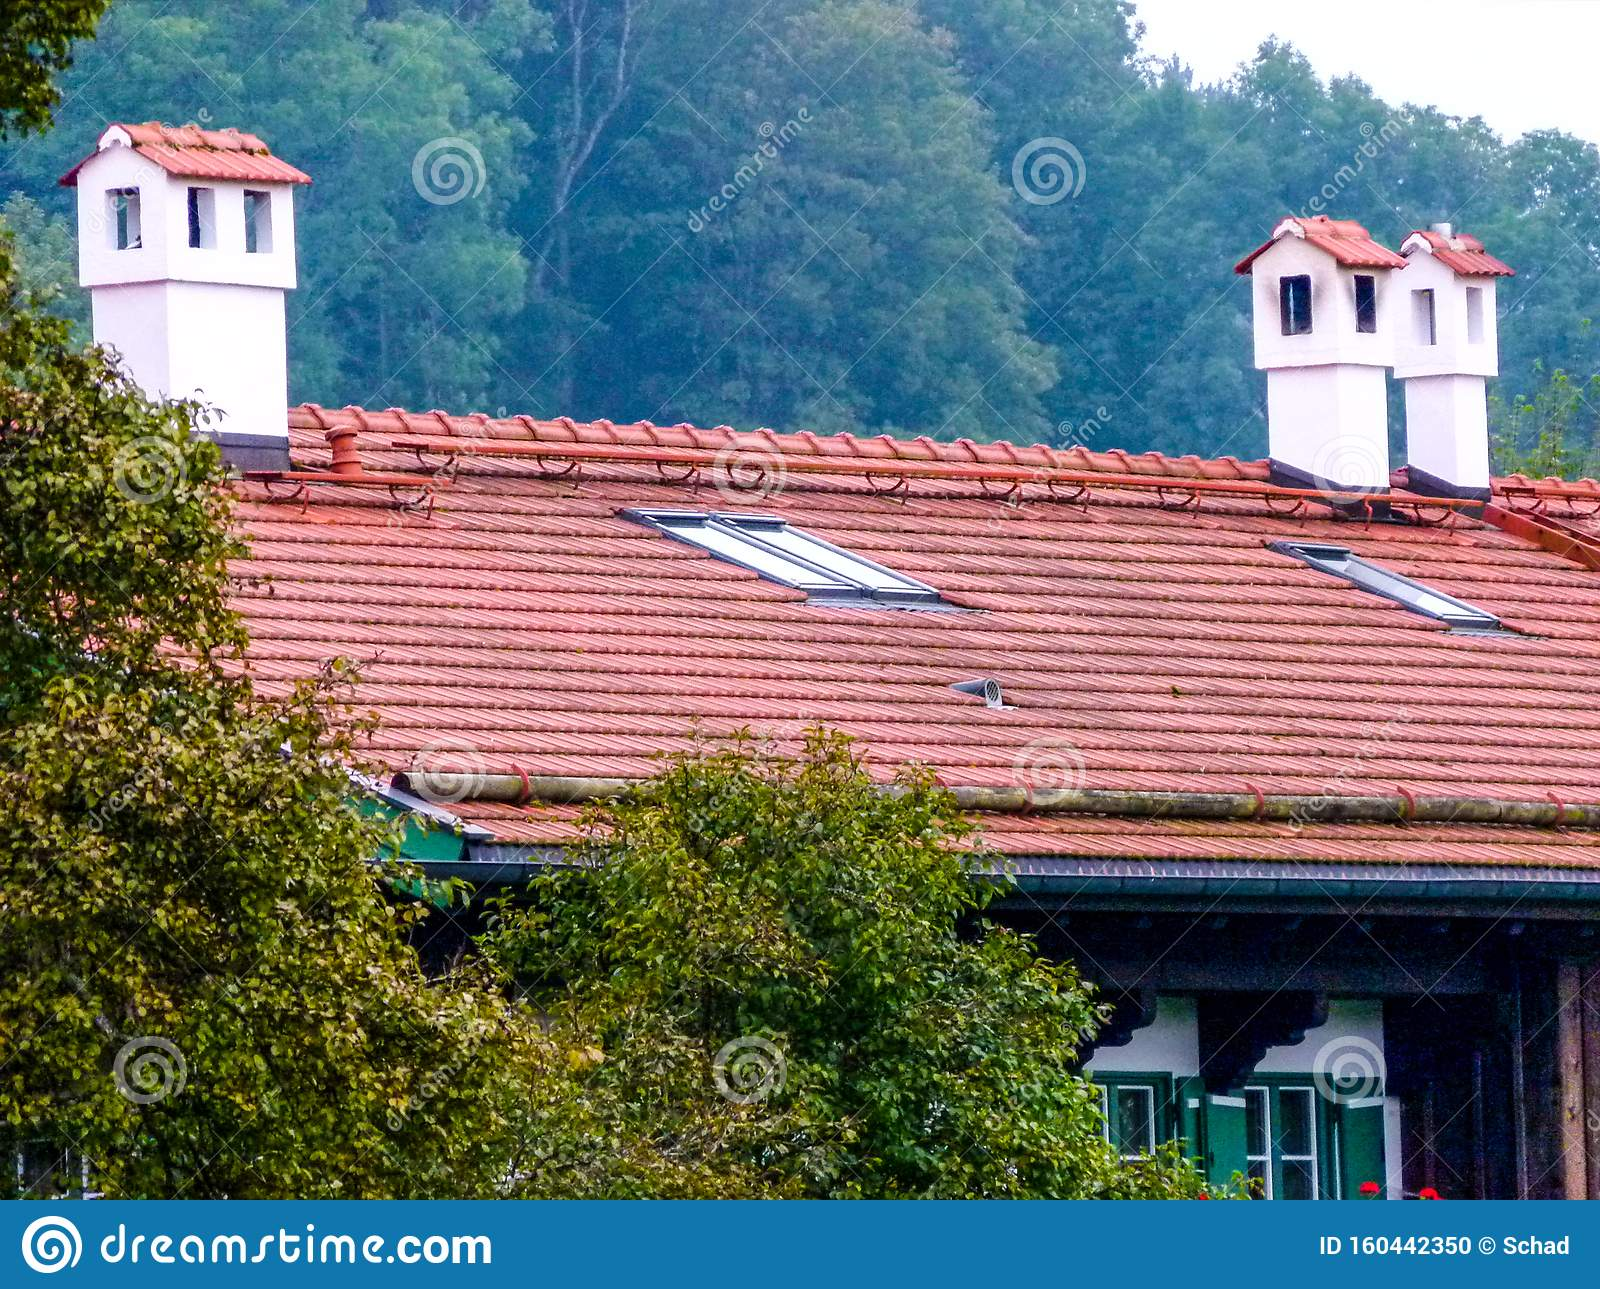 Brick Roof With Brick Chimneys With Roof Tile Cover 1 Stock Photo Image Of Beautiful Farmhouse 160442350